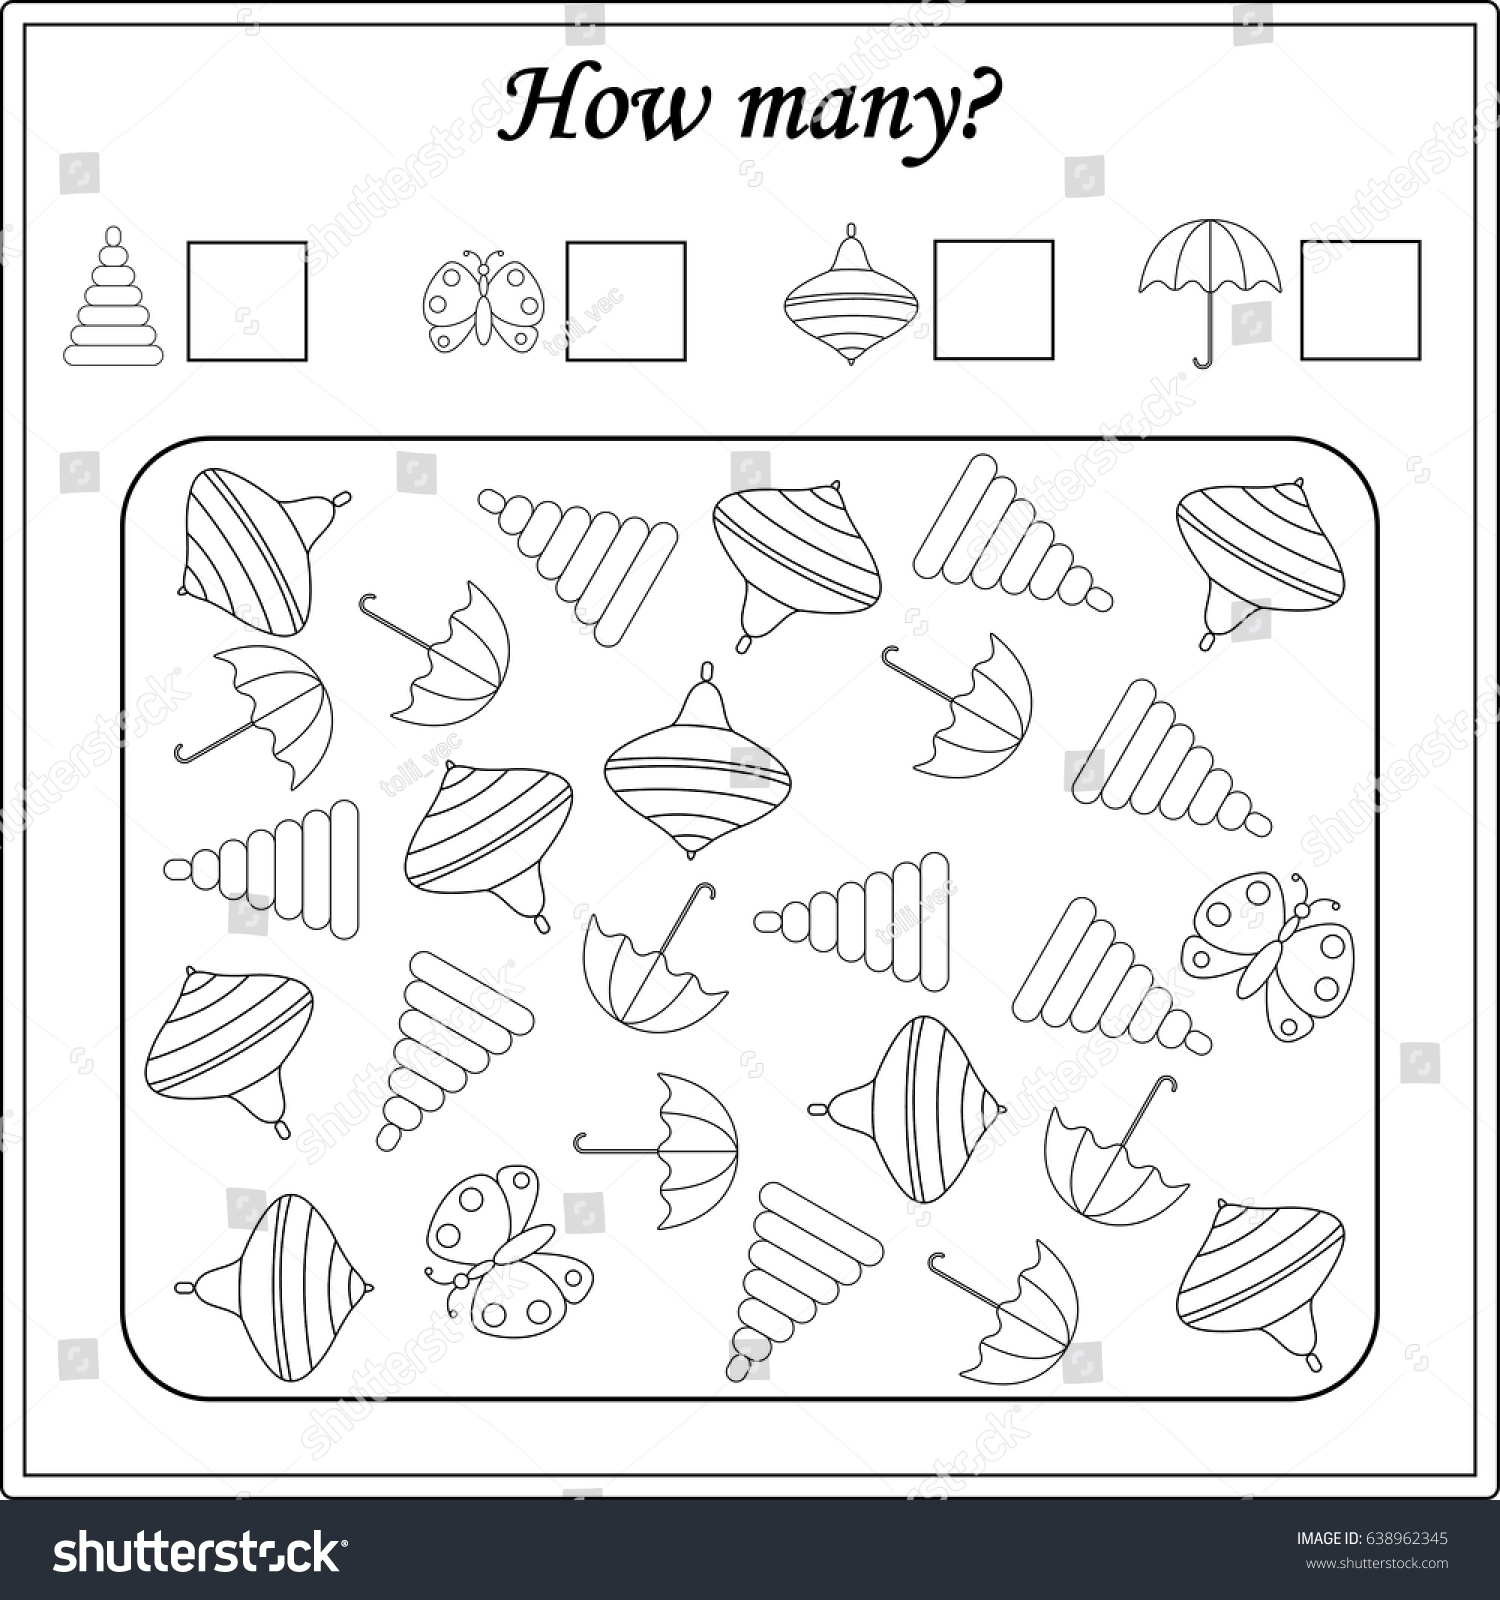 Mathematics Task How Many Objects Learning Stock Vector Royalty